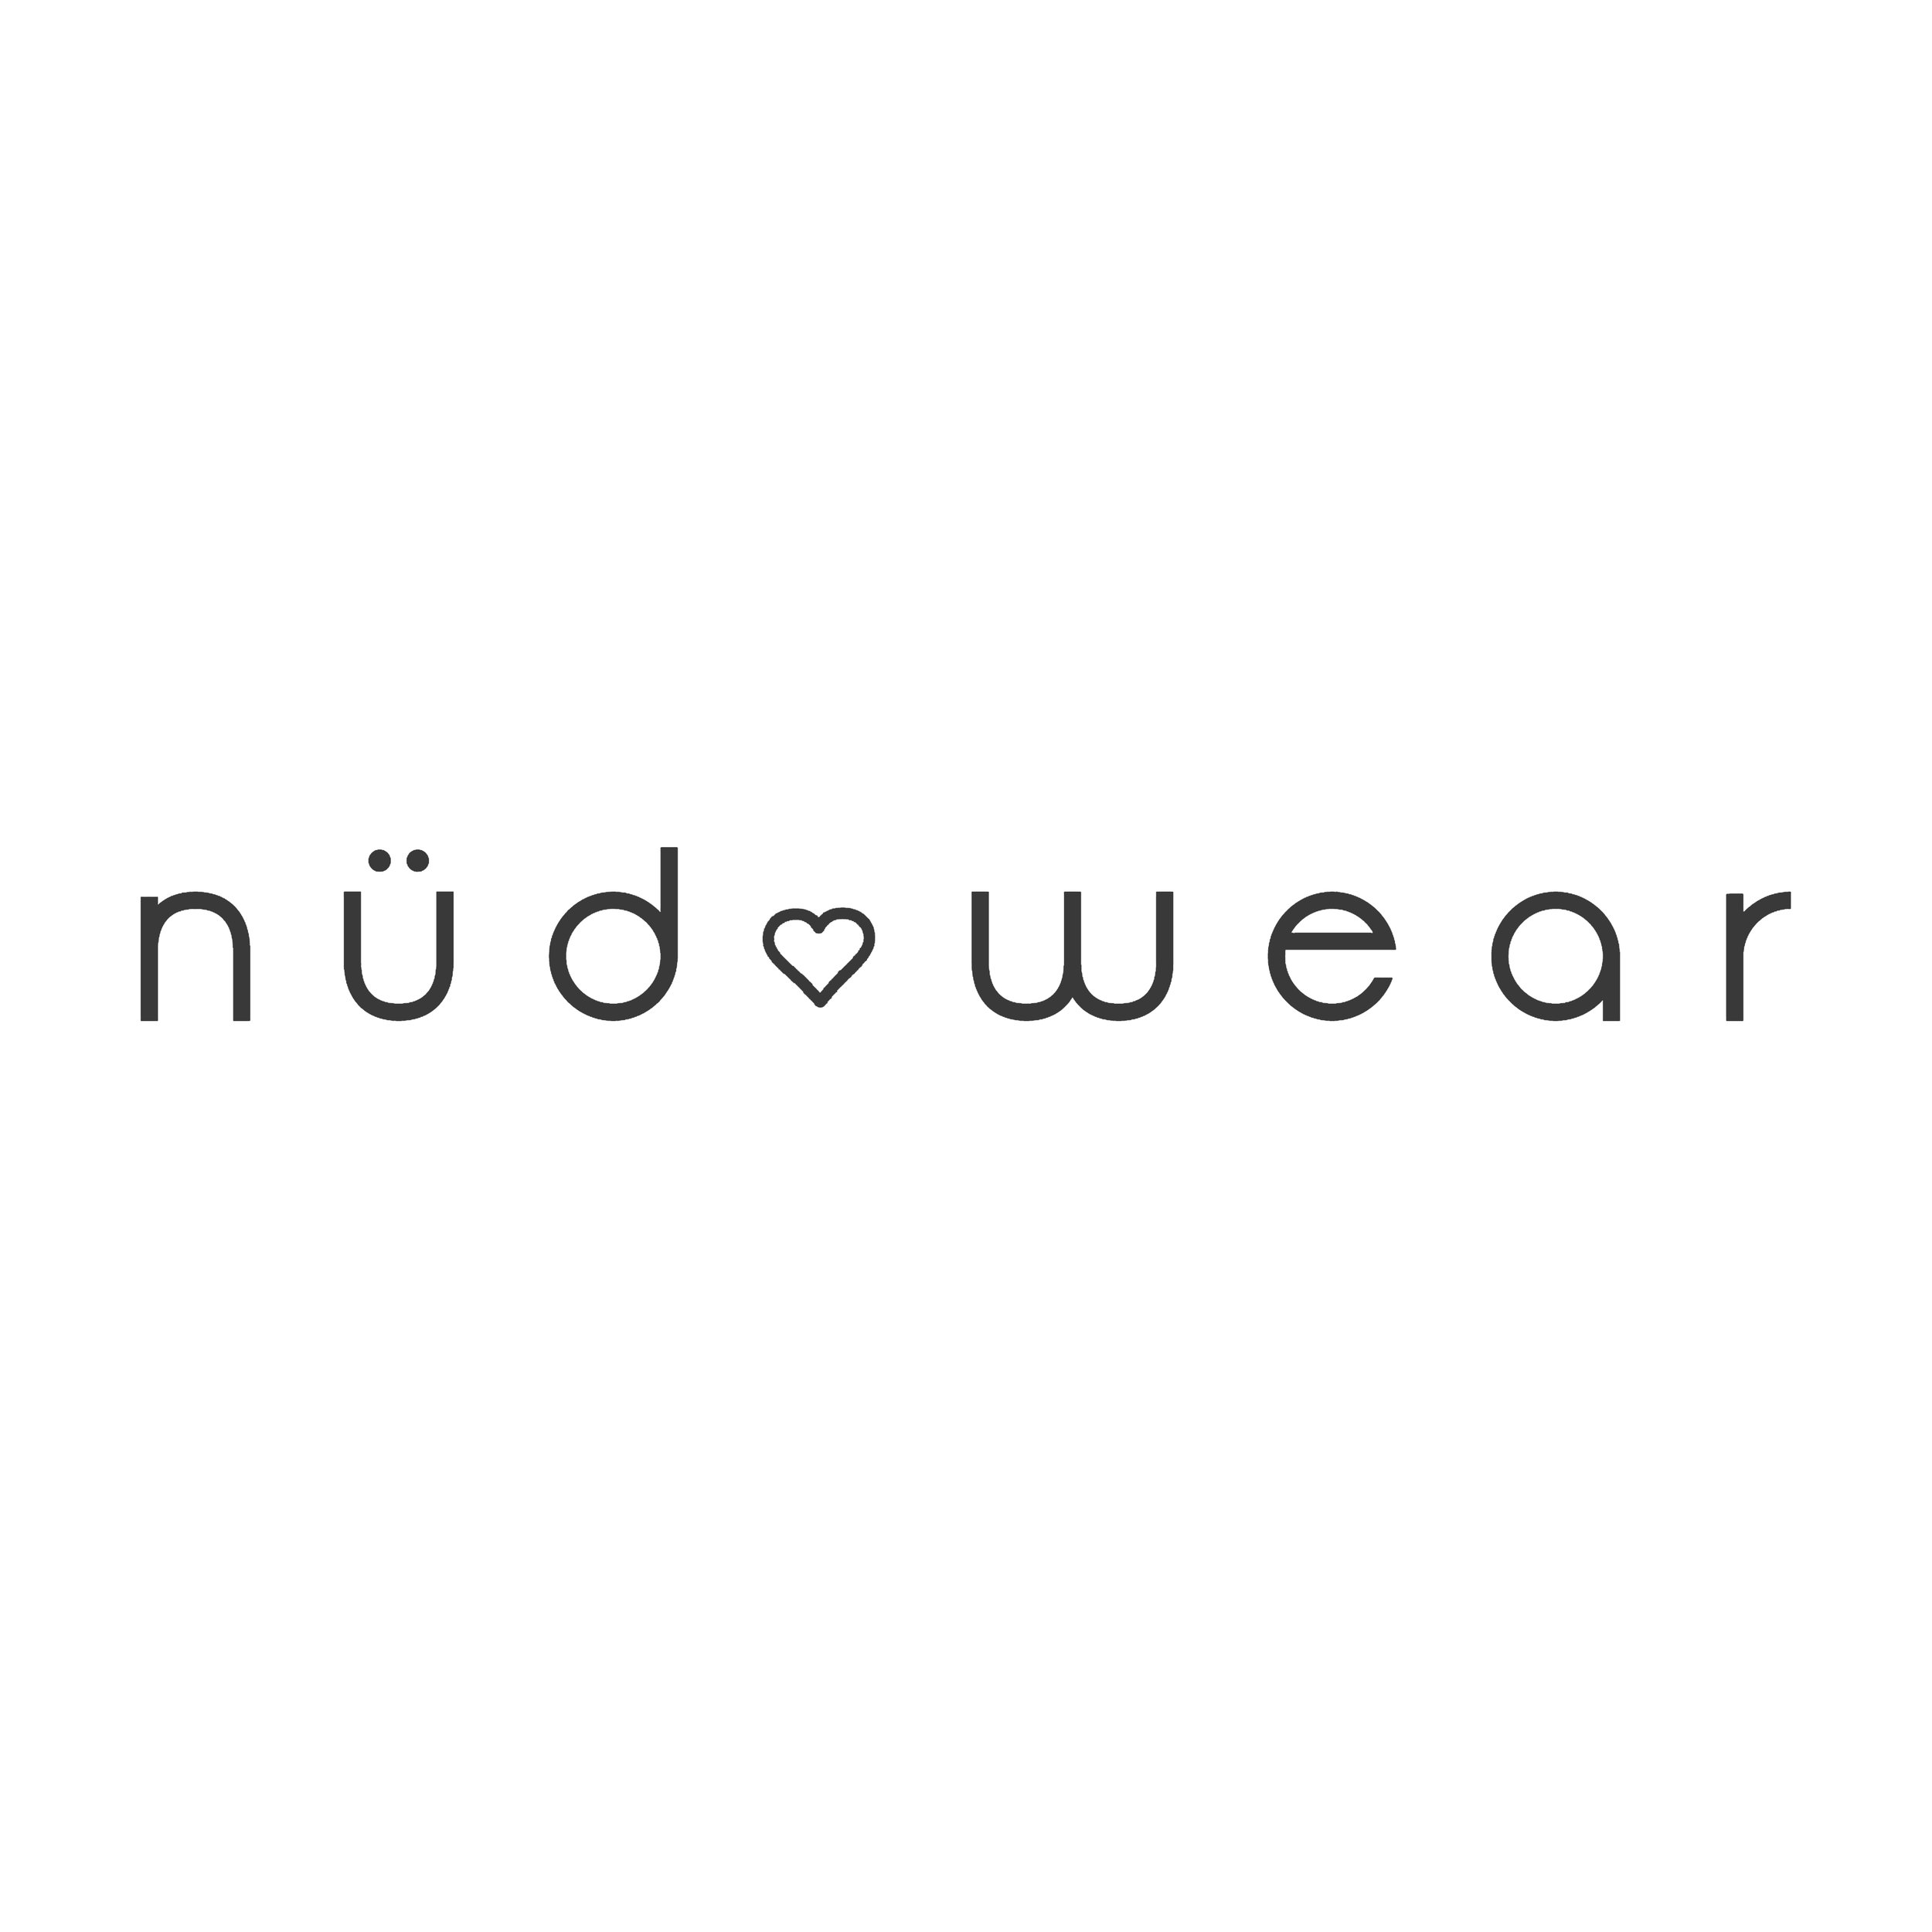 Copy of nudwear